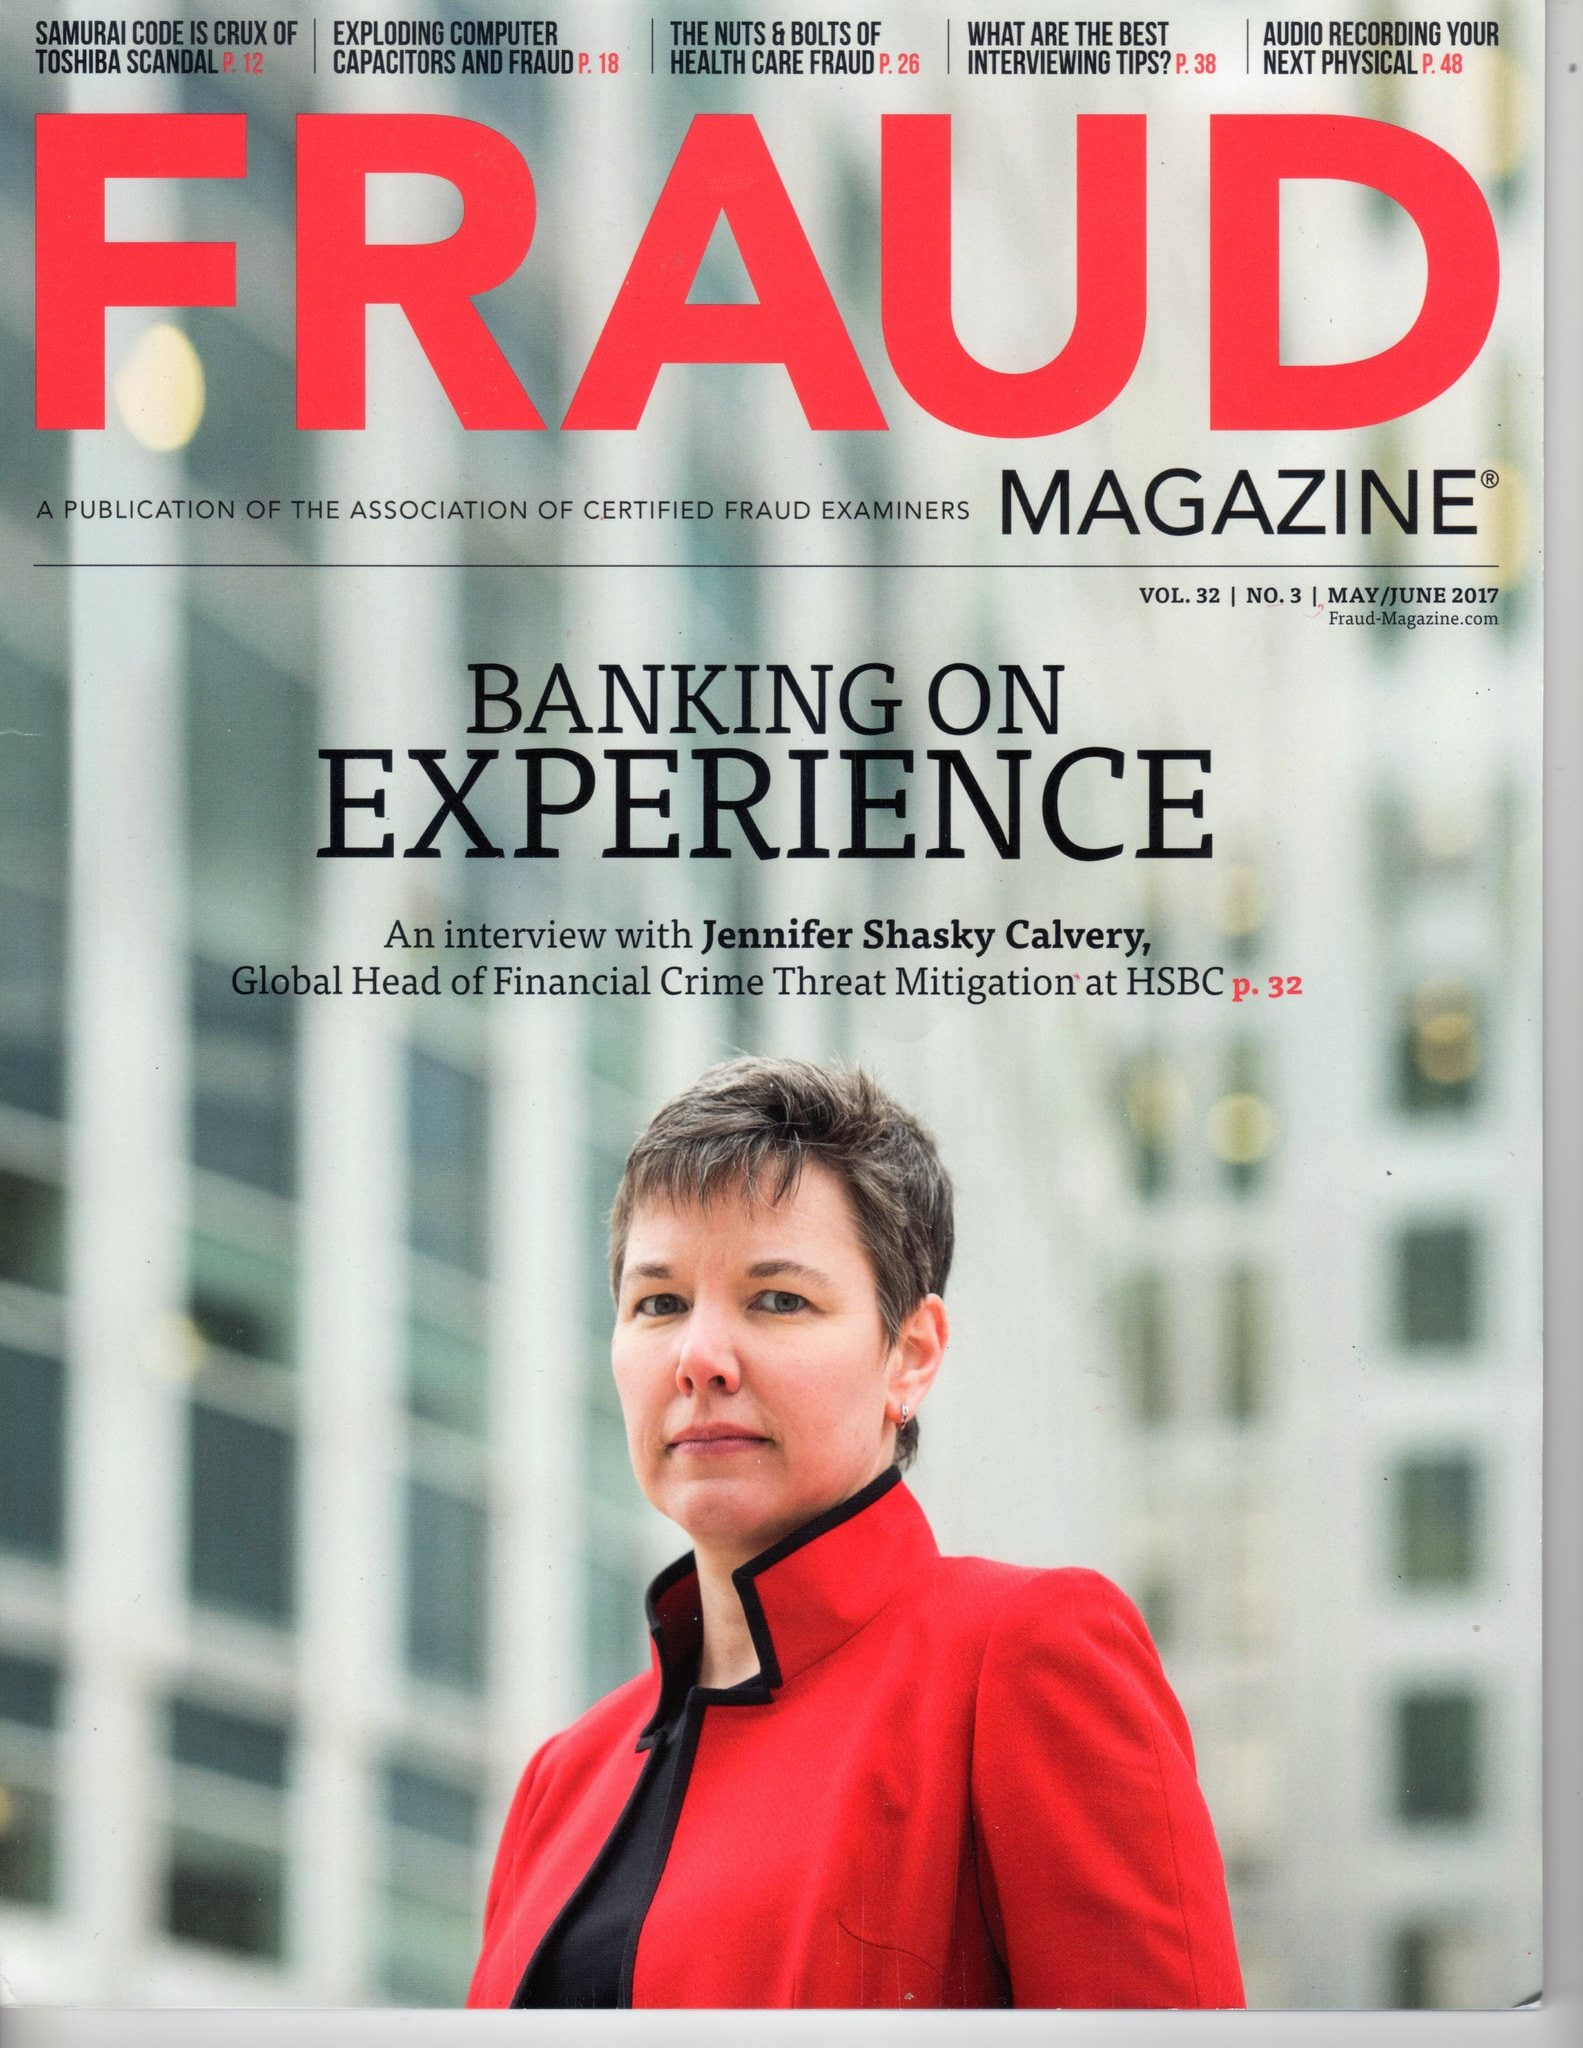 Fraud Magazine May/June 2017 Cover